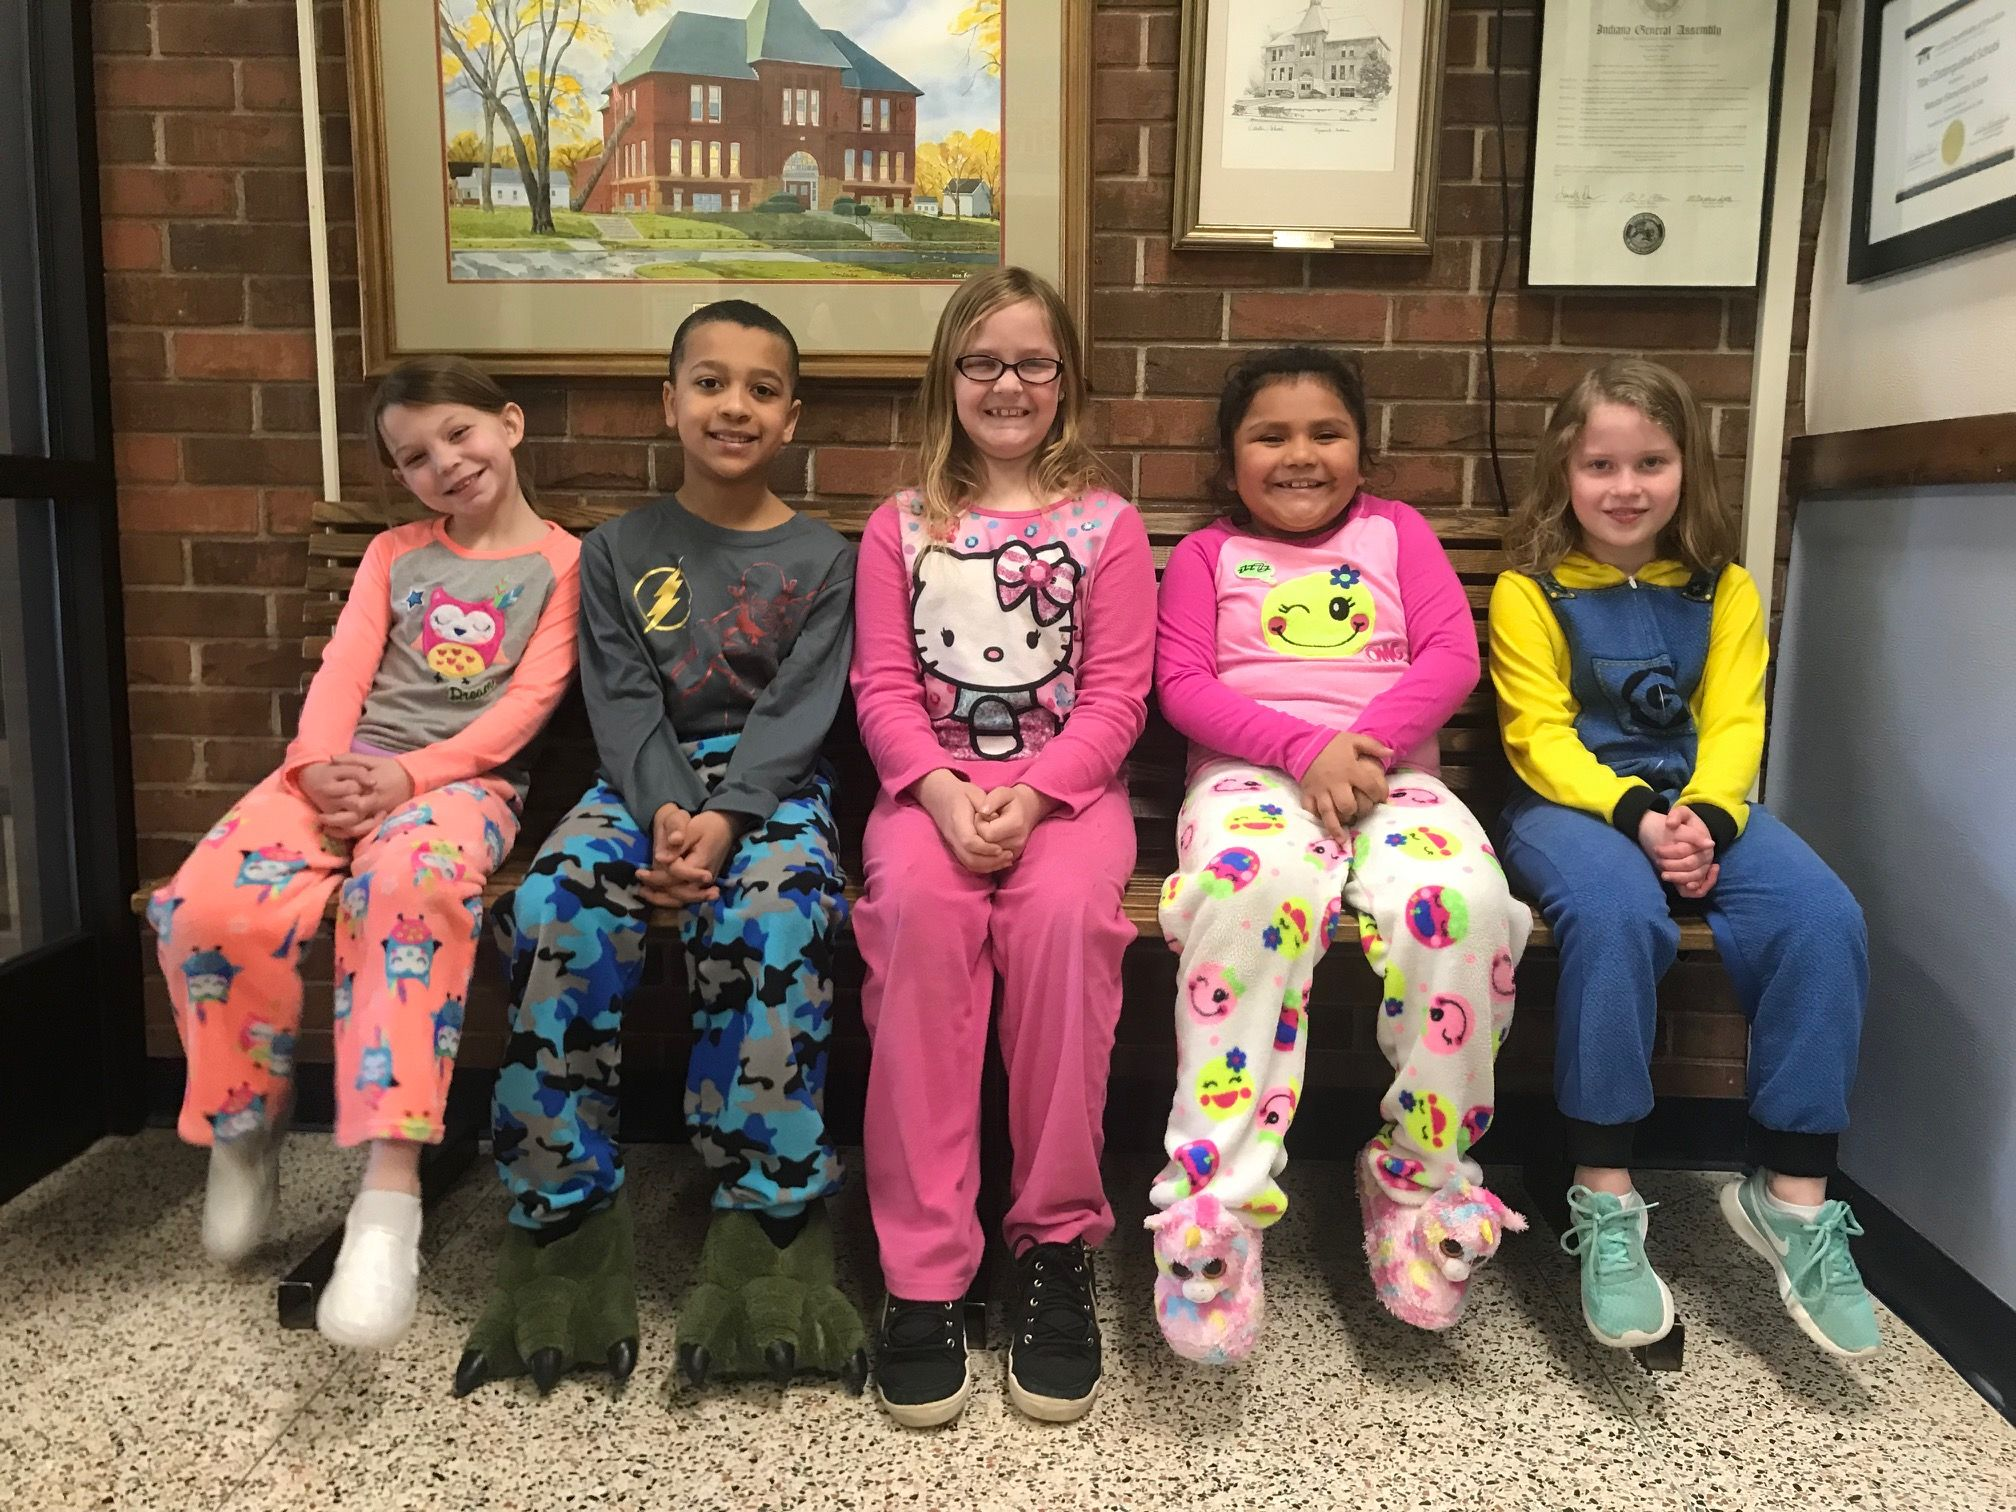 Webster Elementary School Held A Special Pajama And